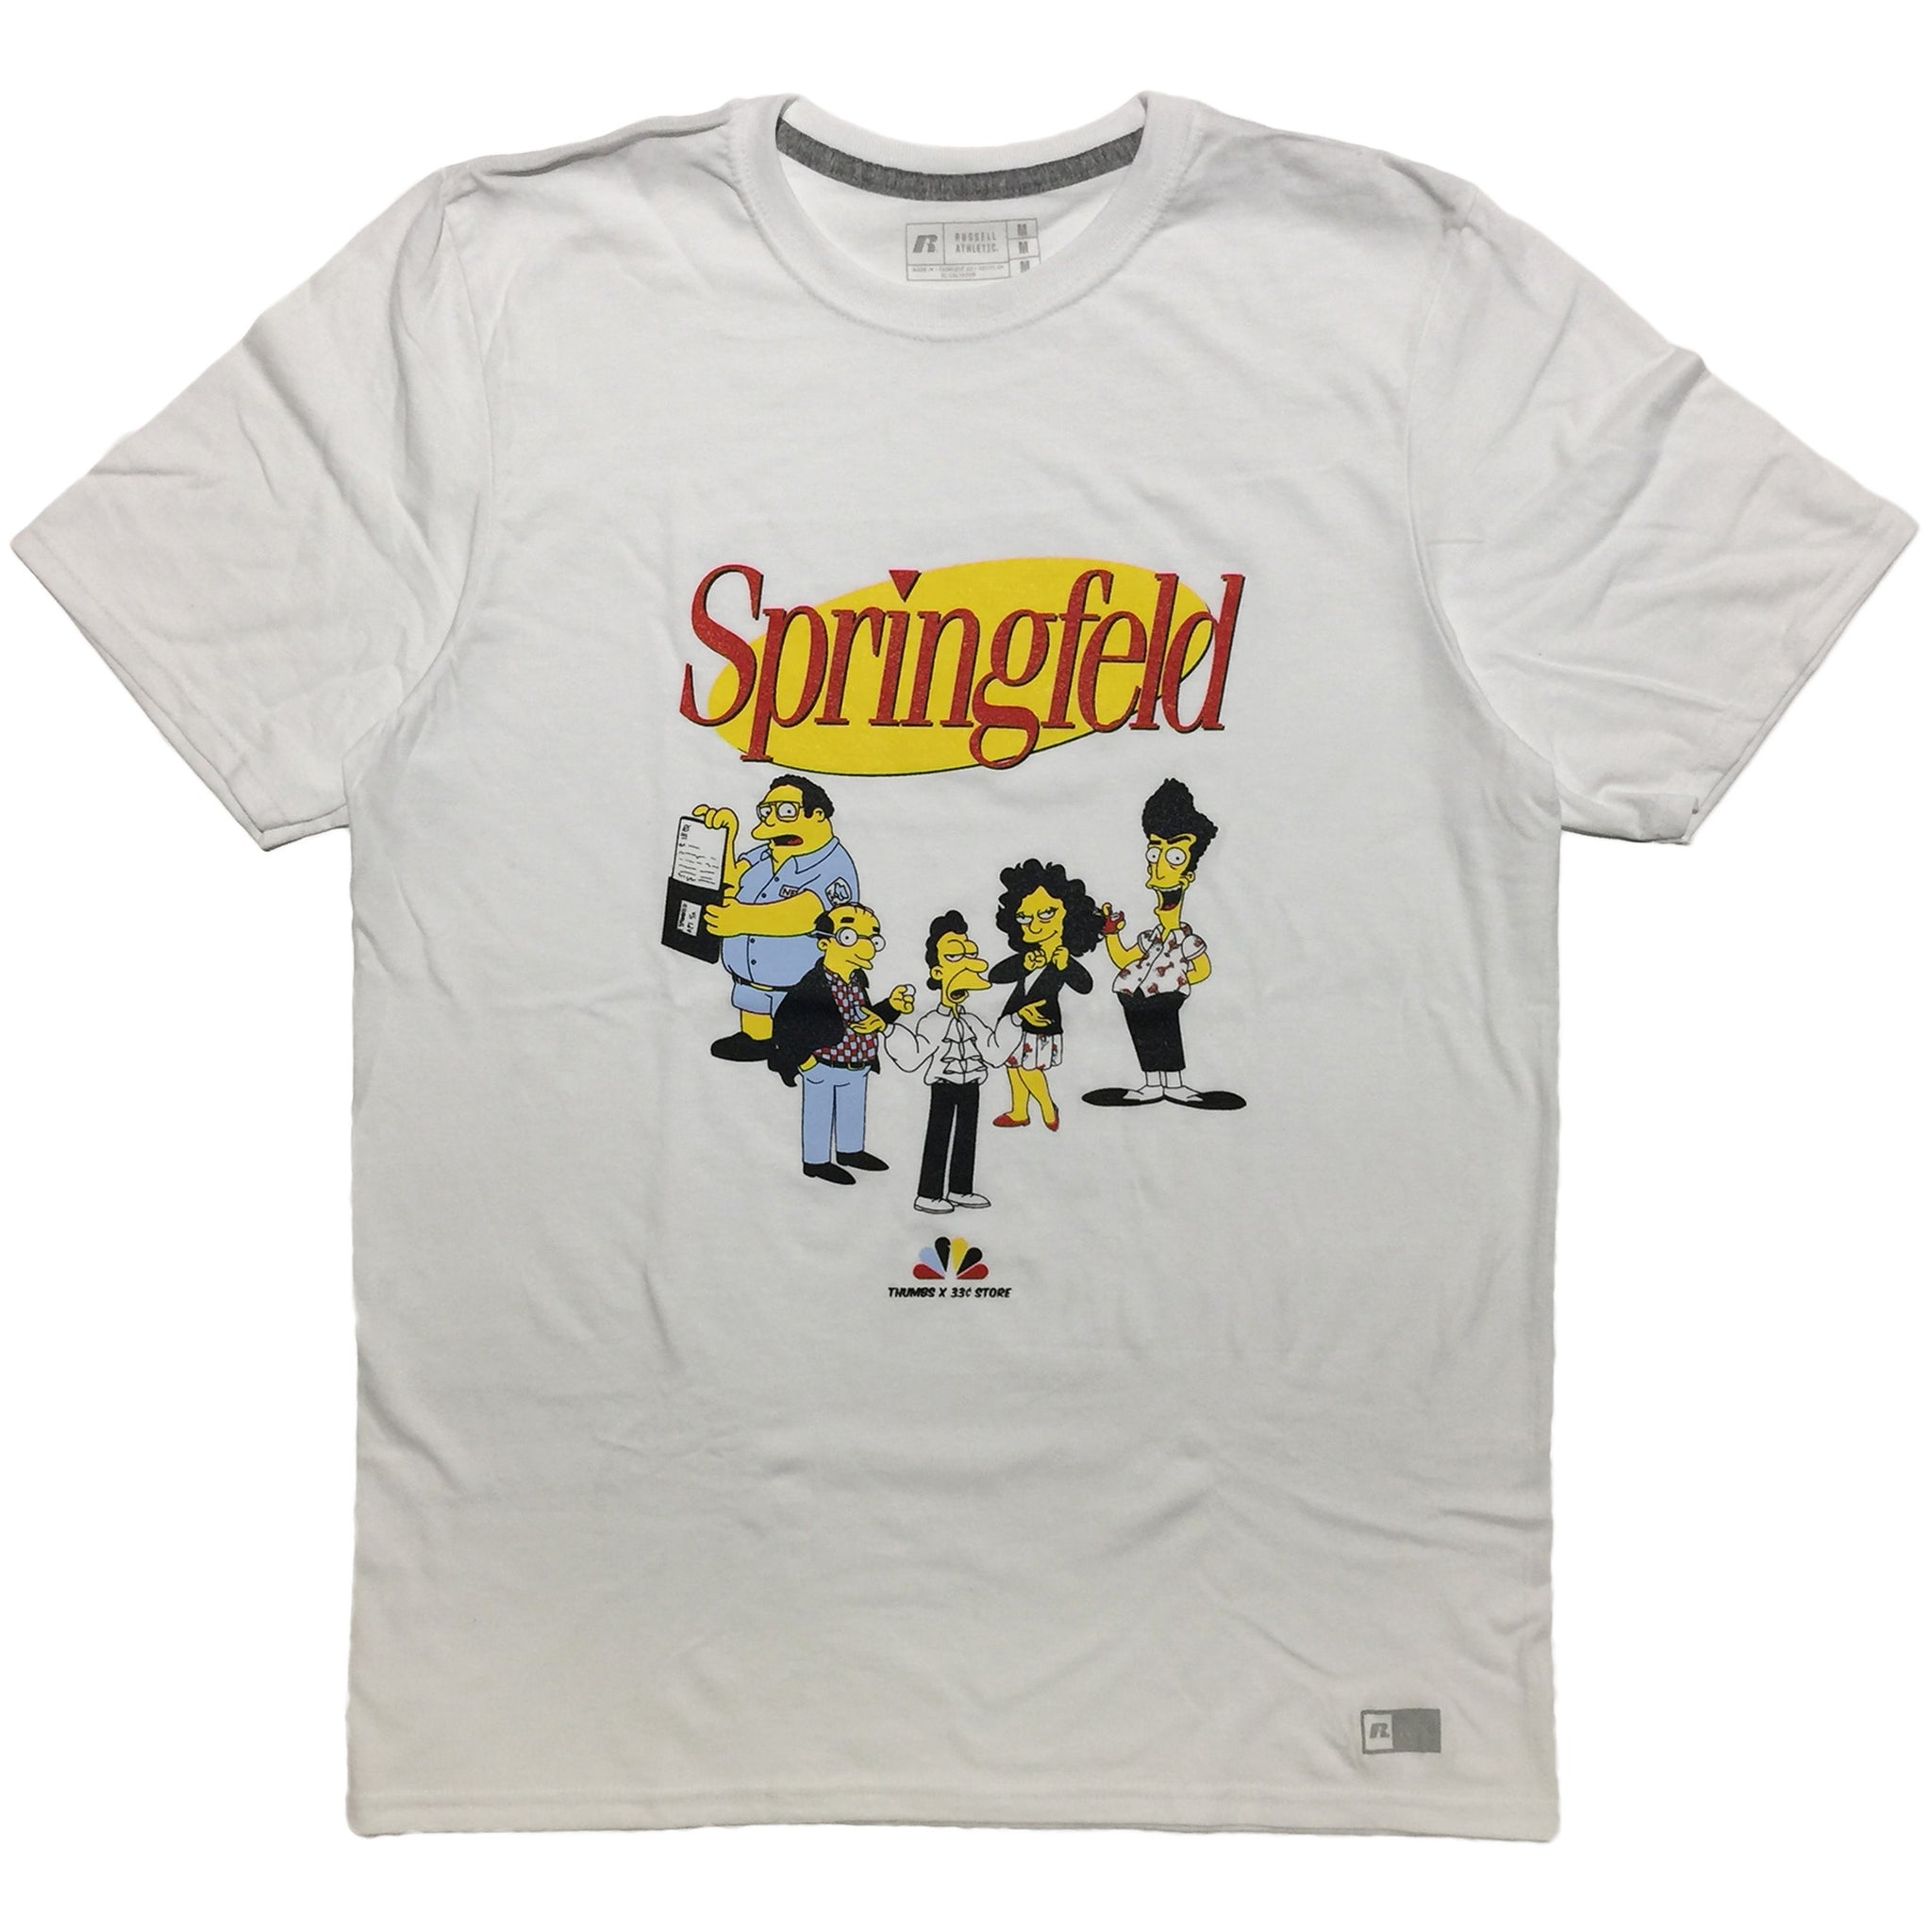 """Springfeld"" Tee by Thumbs x 33¢ Store"